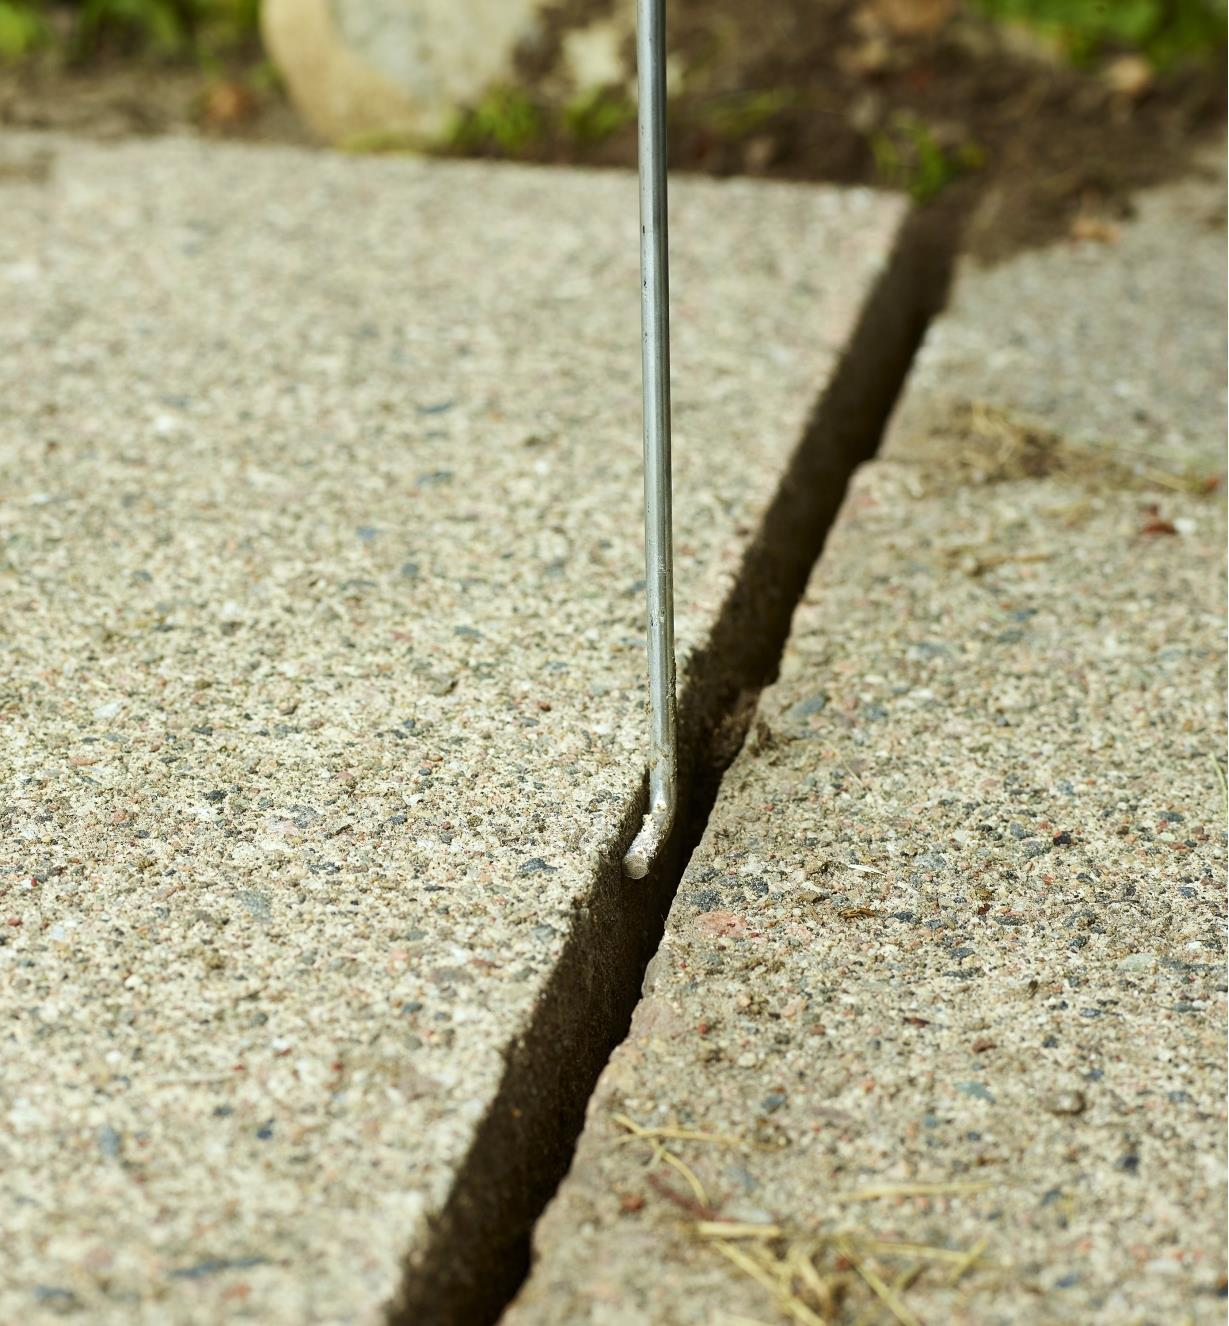 A close view of a SlabSetter tip being slipped between two close-fitting patio stones